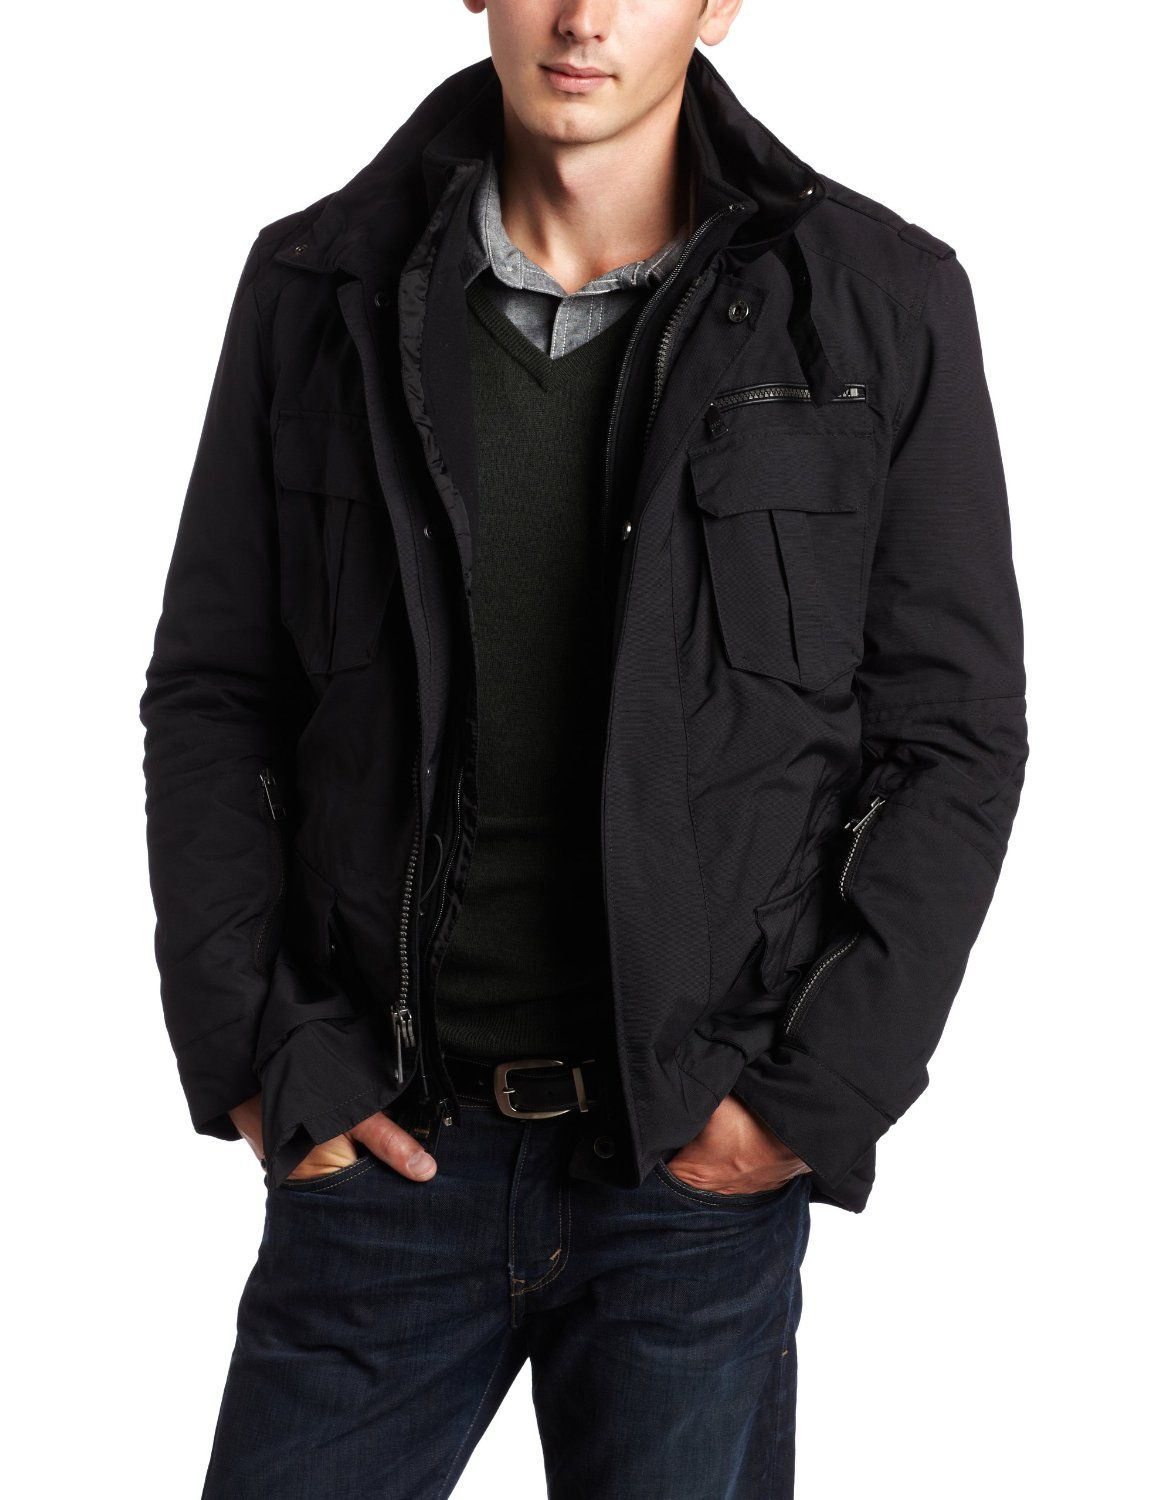 Marc New York jacket. Casual style. Marc new york, Jackets